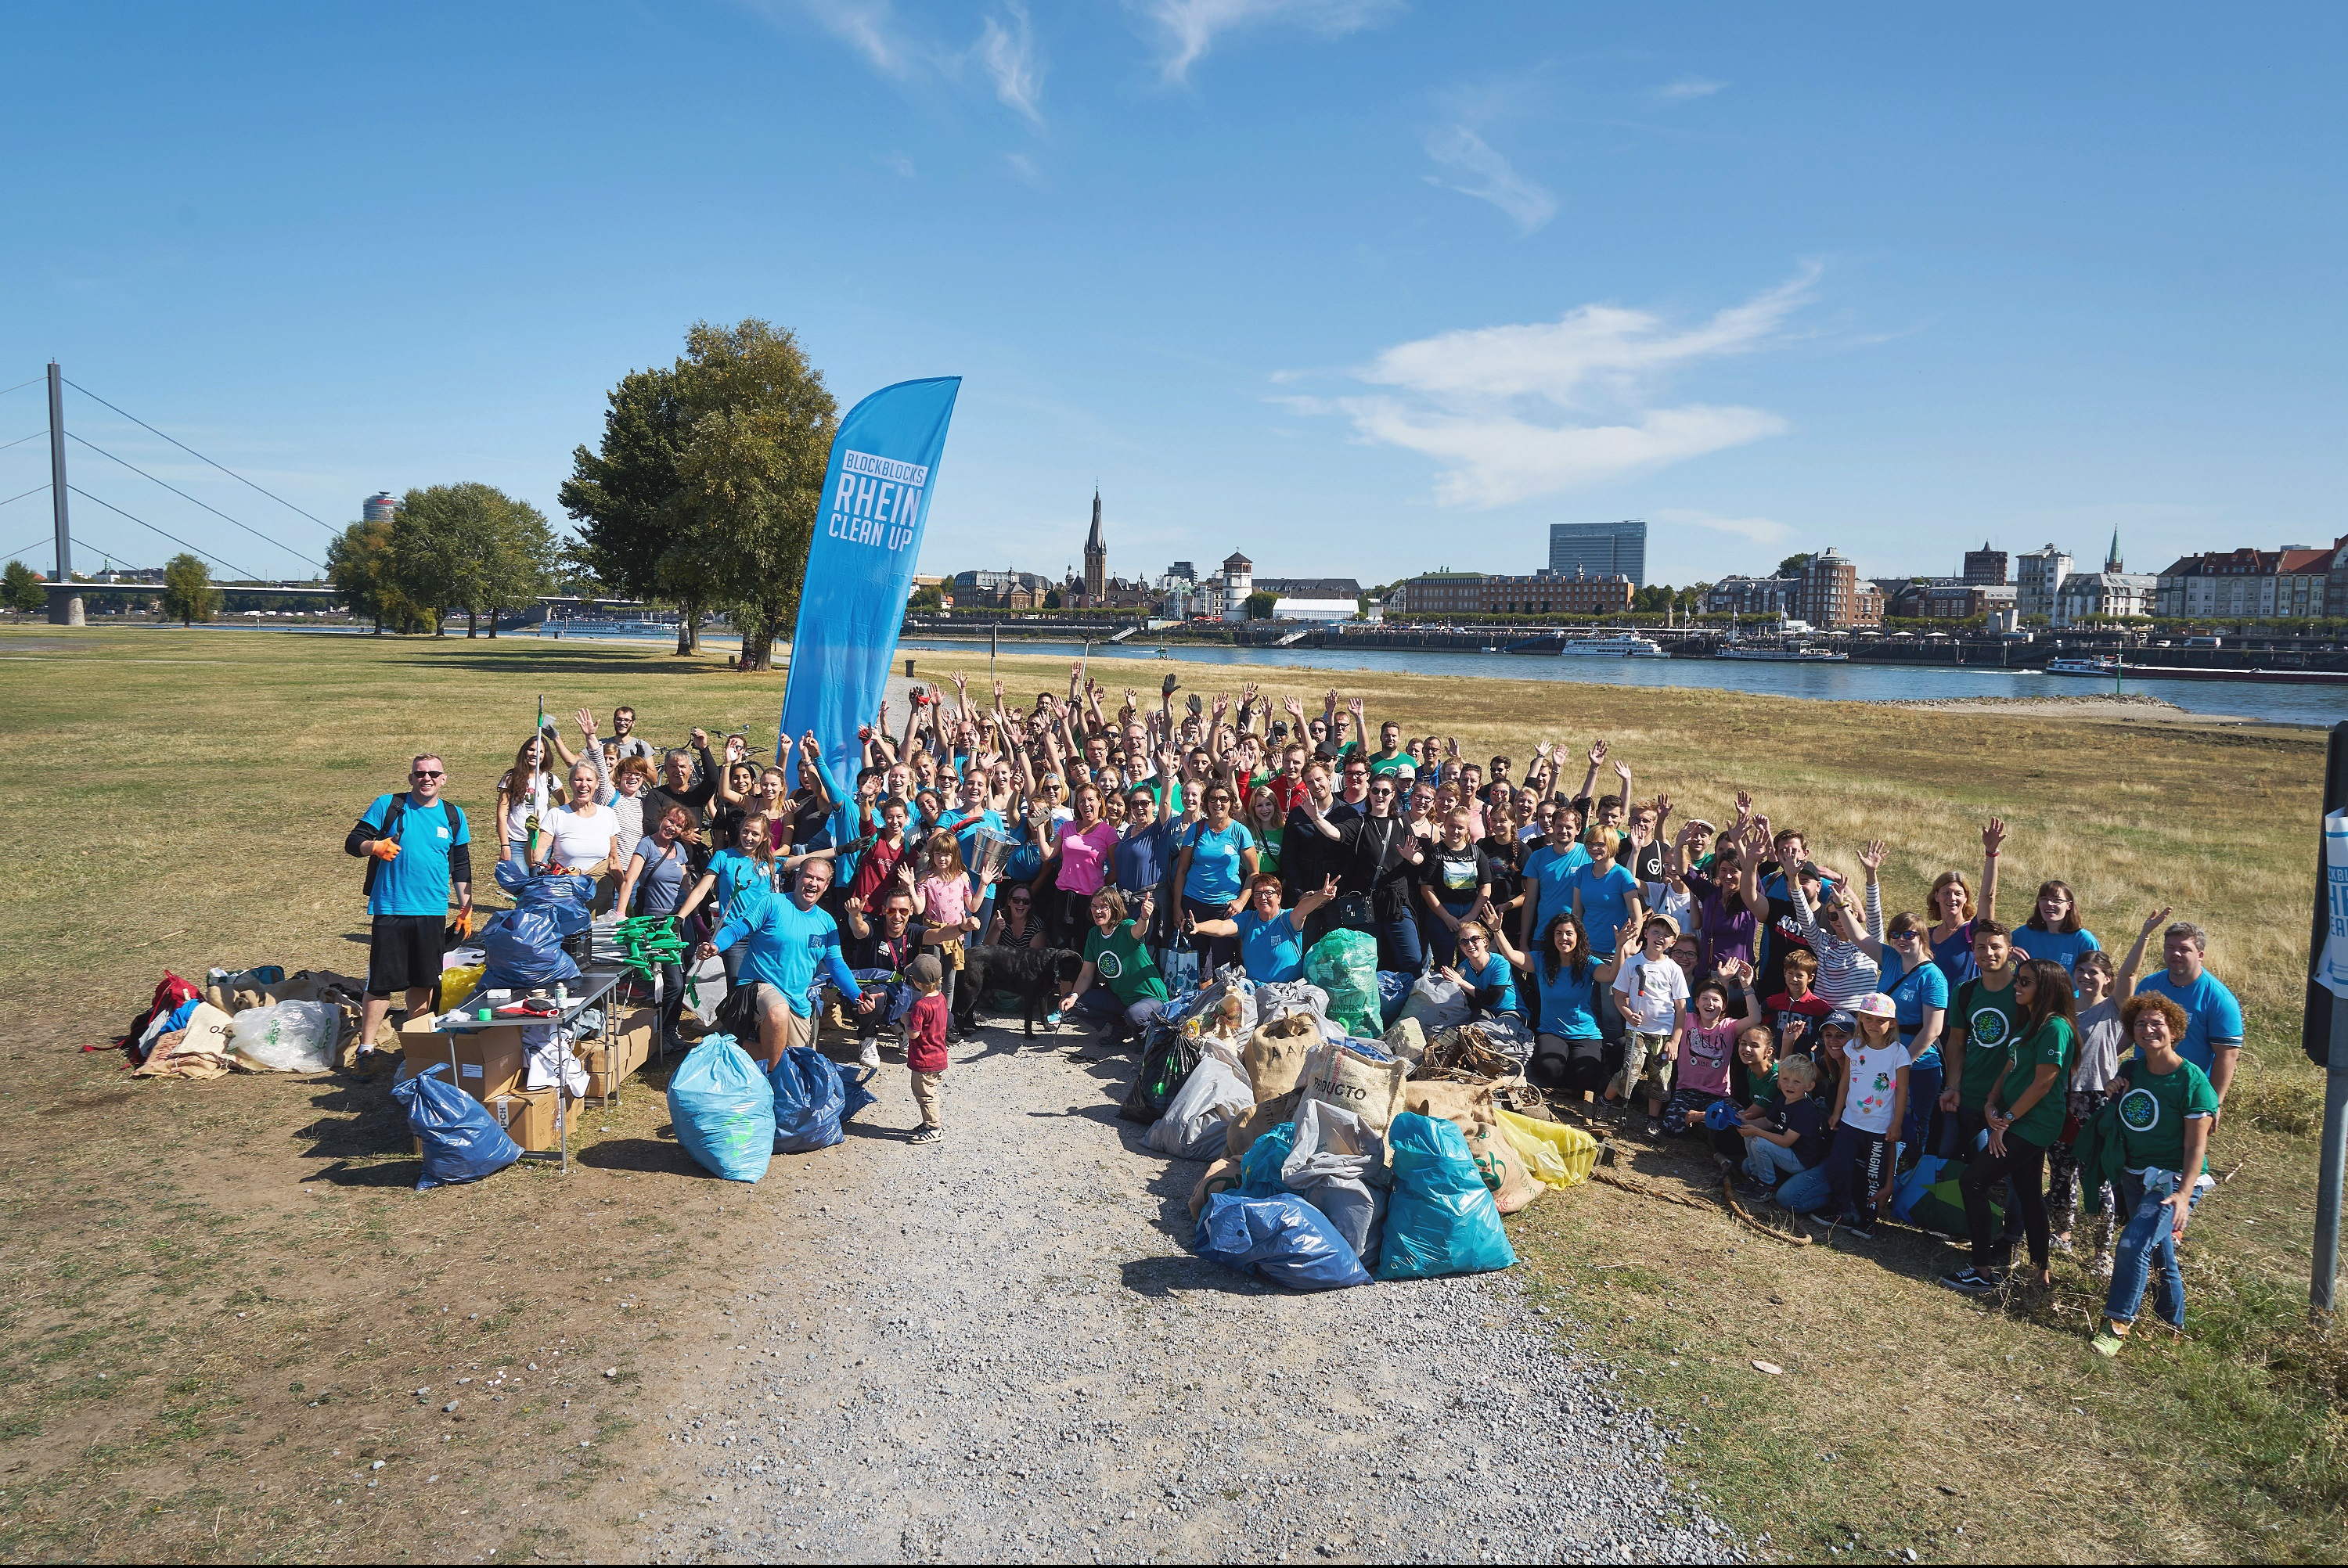 Blockblocks Rhein Cleanup - Foto: Karsten Günter